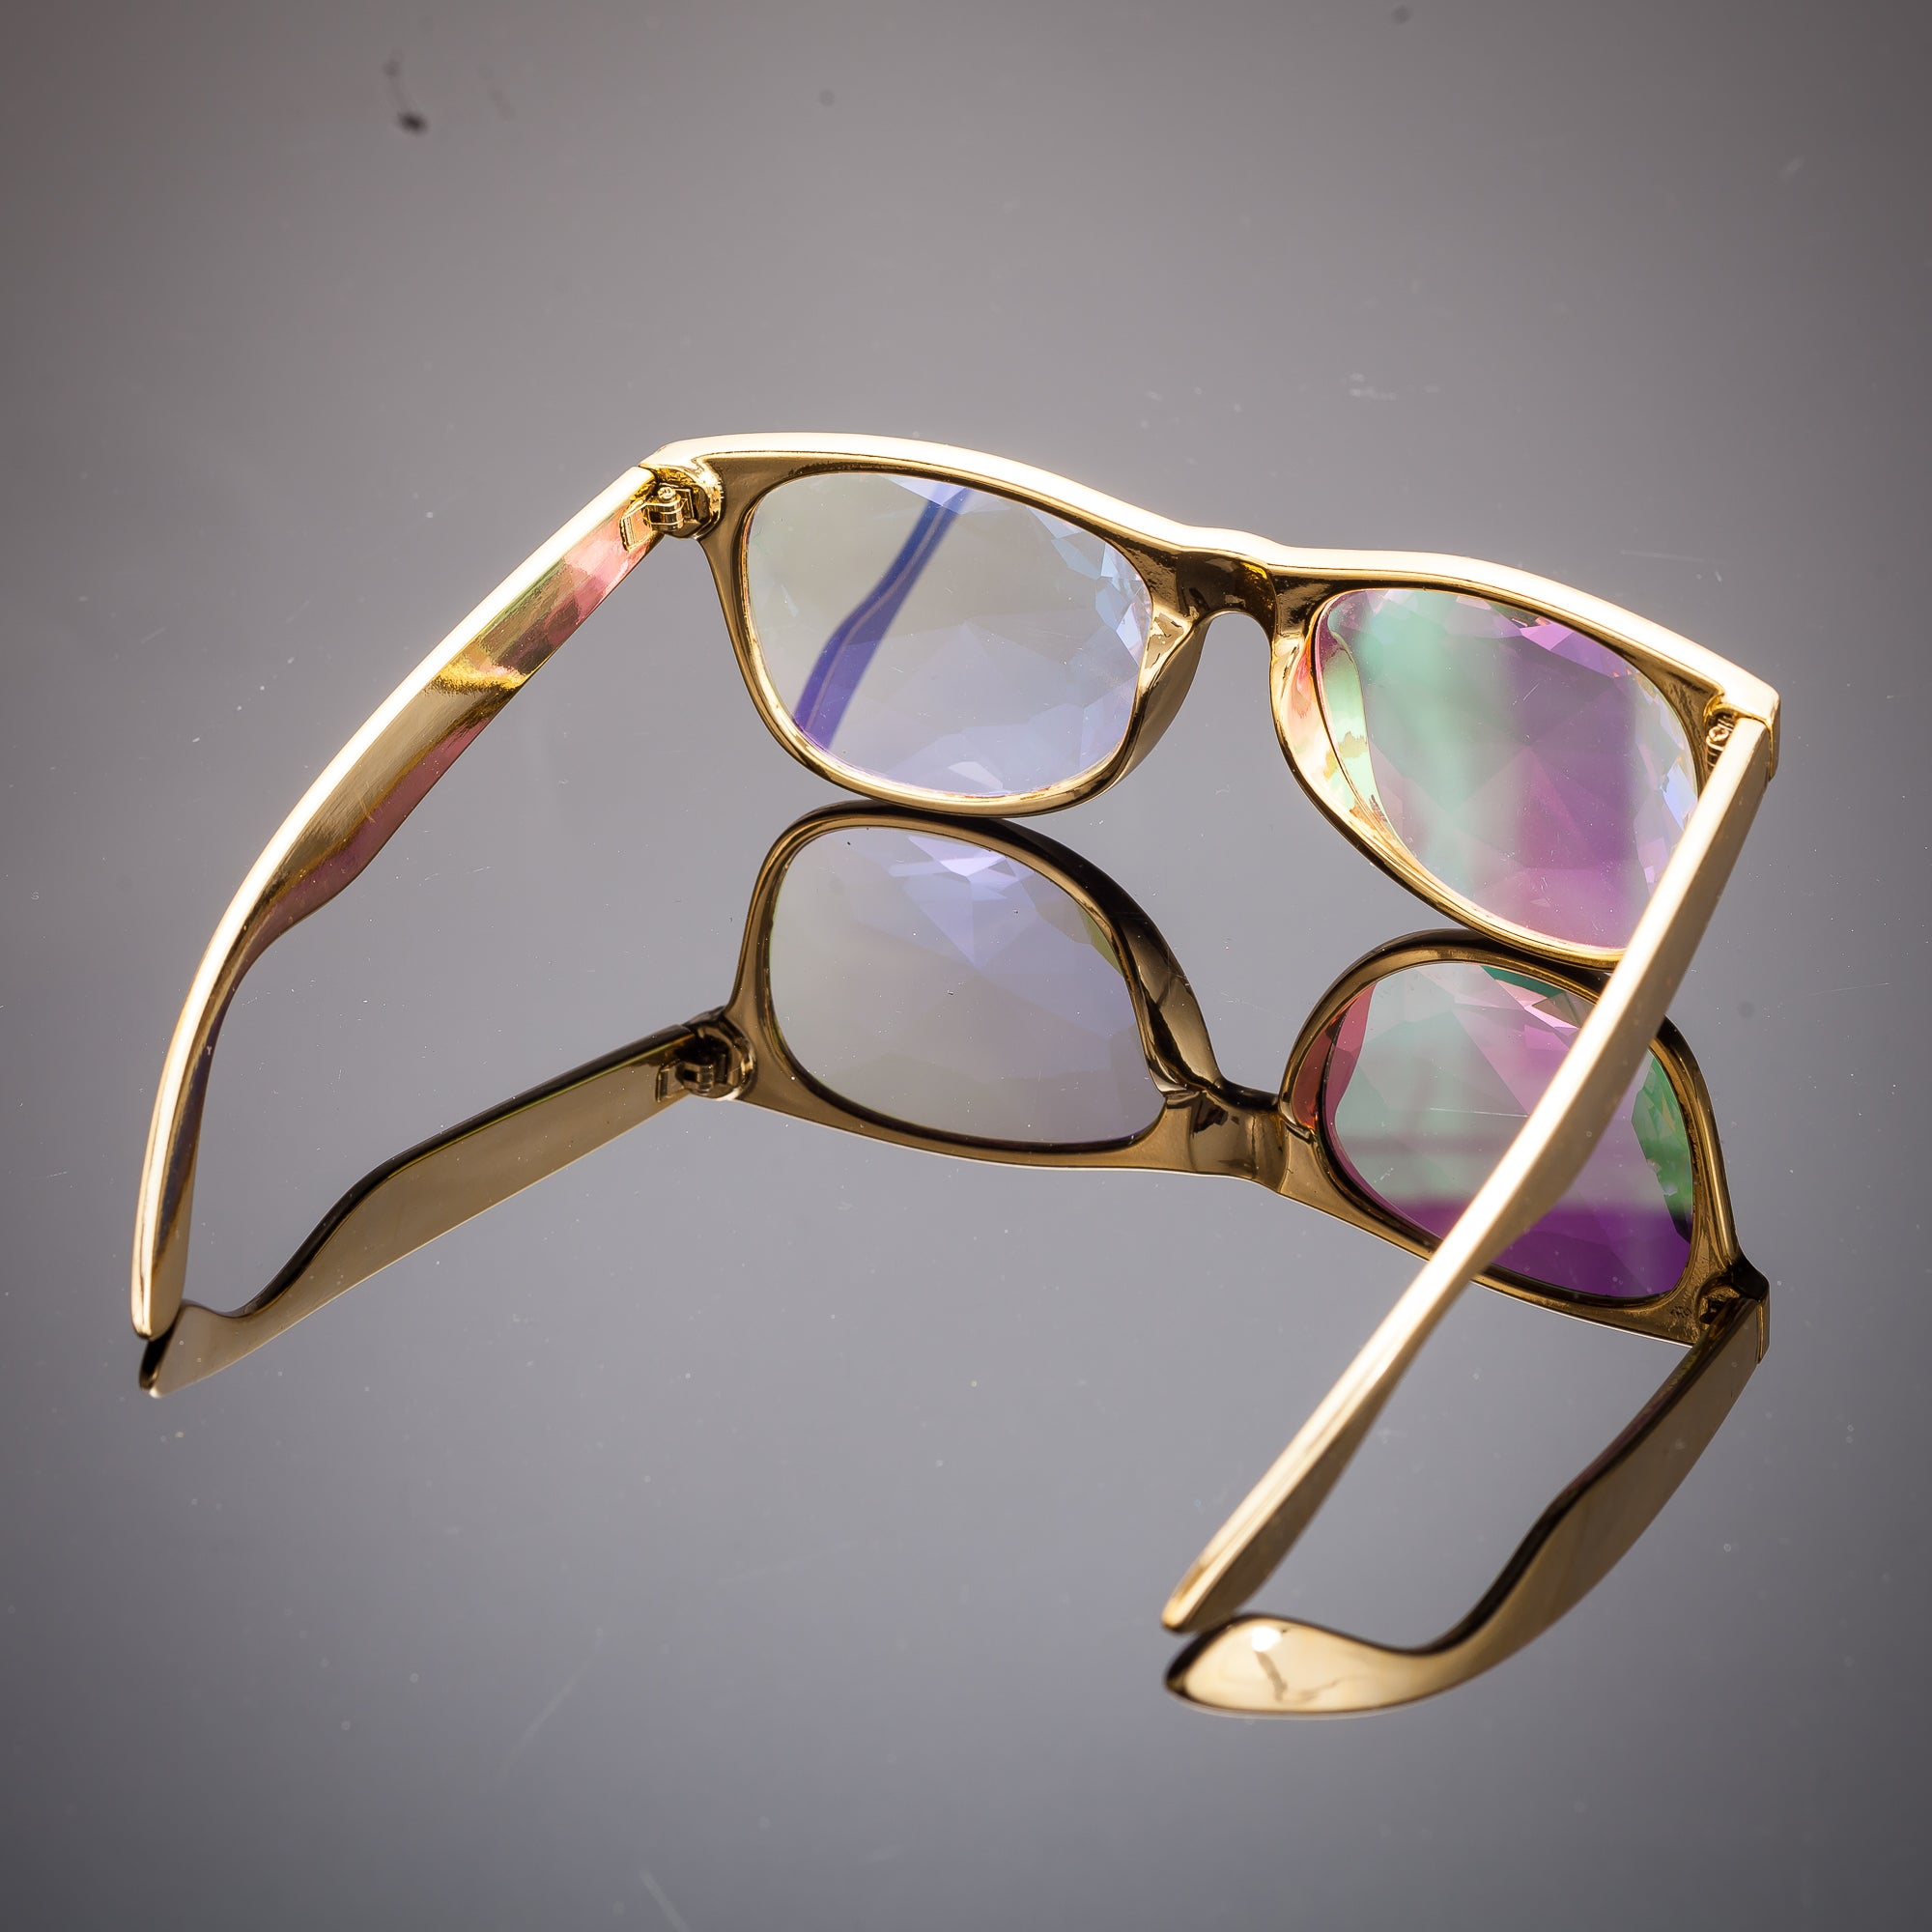 Intense Diamond Kaleidoscope Effect rainbow crystal lens Sunglasses Women Men Party Festival Ghetto Bling Gold Glasses at SuperFried's Festival Accessories and Sunglasses Online store